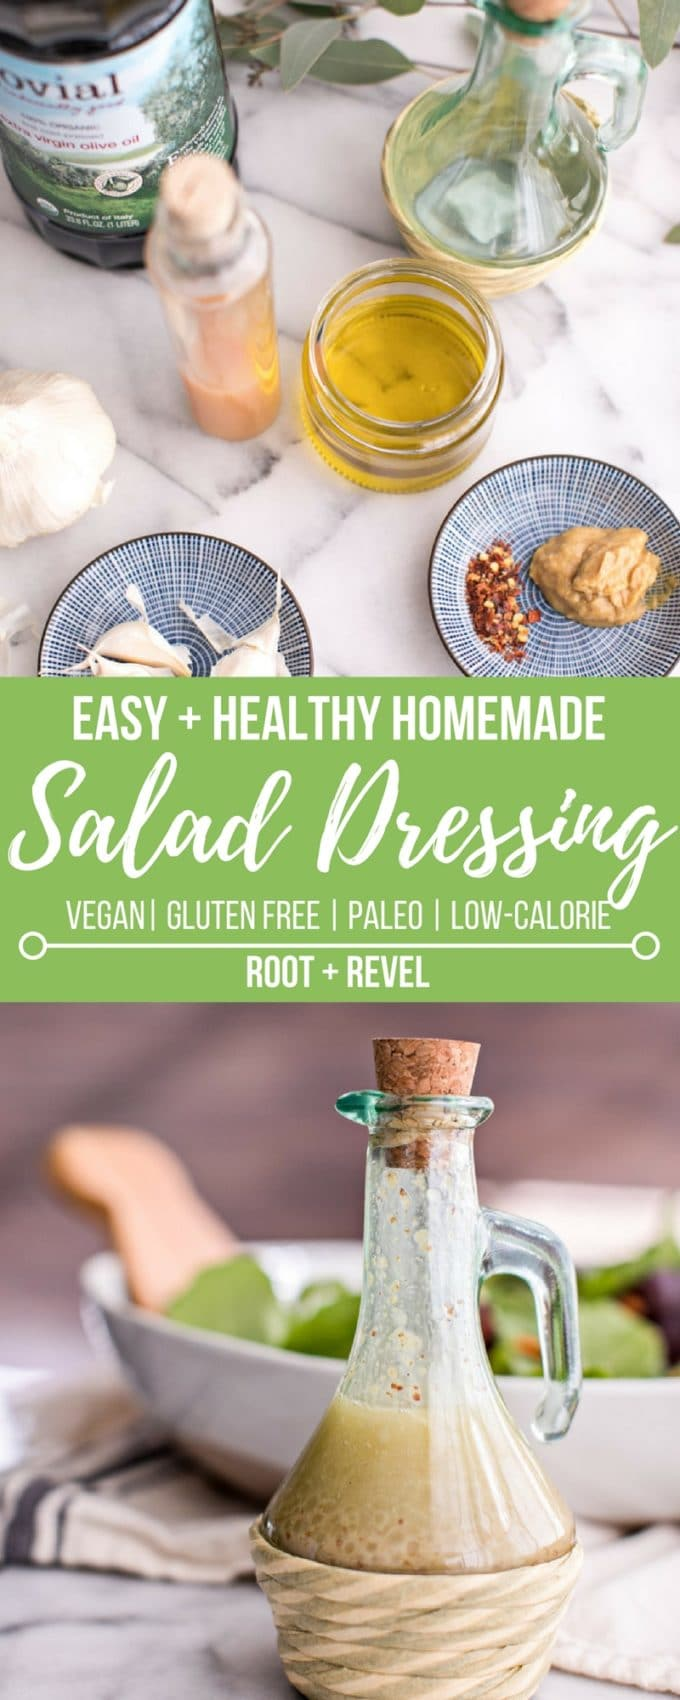 Store-bought salad dressing brands are often filled with excess sugar and sodium, inflammatory oils, preservatives and harmful additives like MSG, gums, and artificial colors and flavors. Fortunately, making your own salad dressing couldn't be easier--this healthy homemade vinaigrette is Paleo, gluten-free, vegan and absolutely delicious!